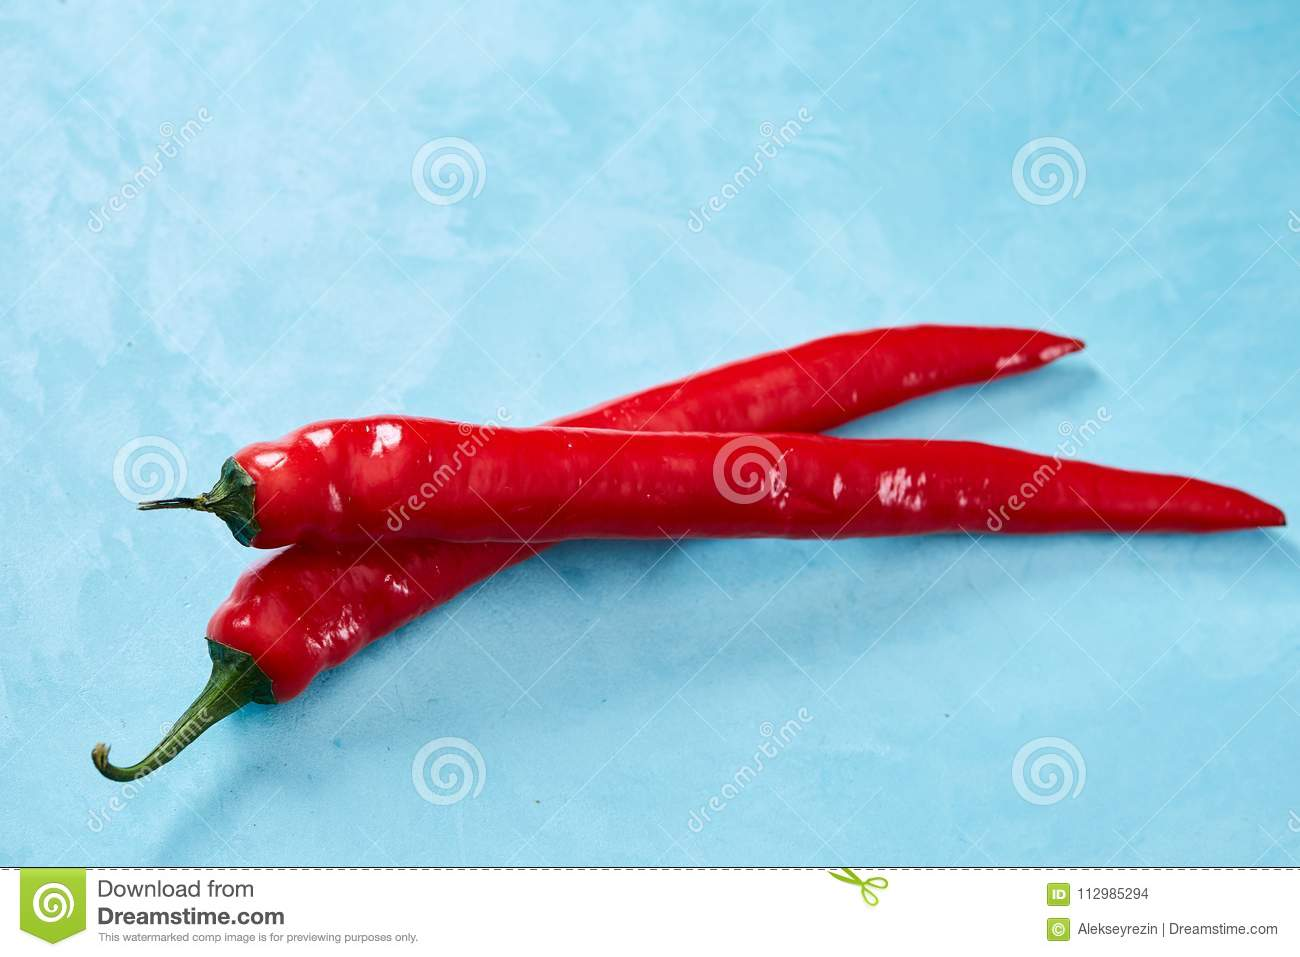 Burning fresh red hot pepper on a blue background, top view, close-up